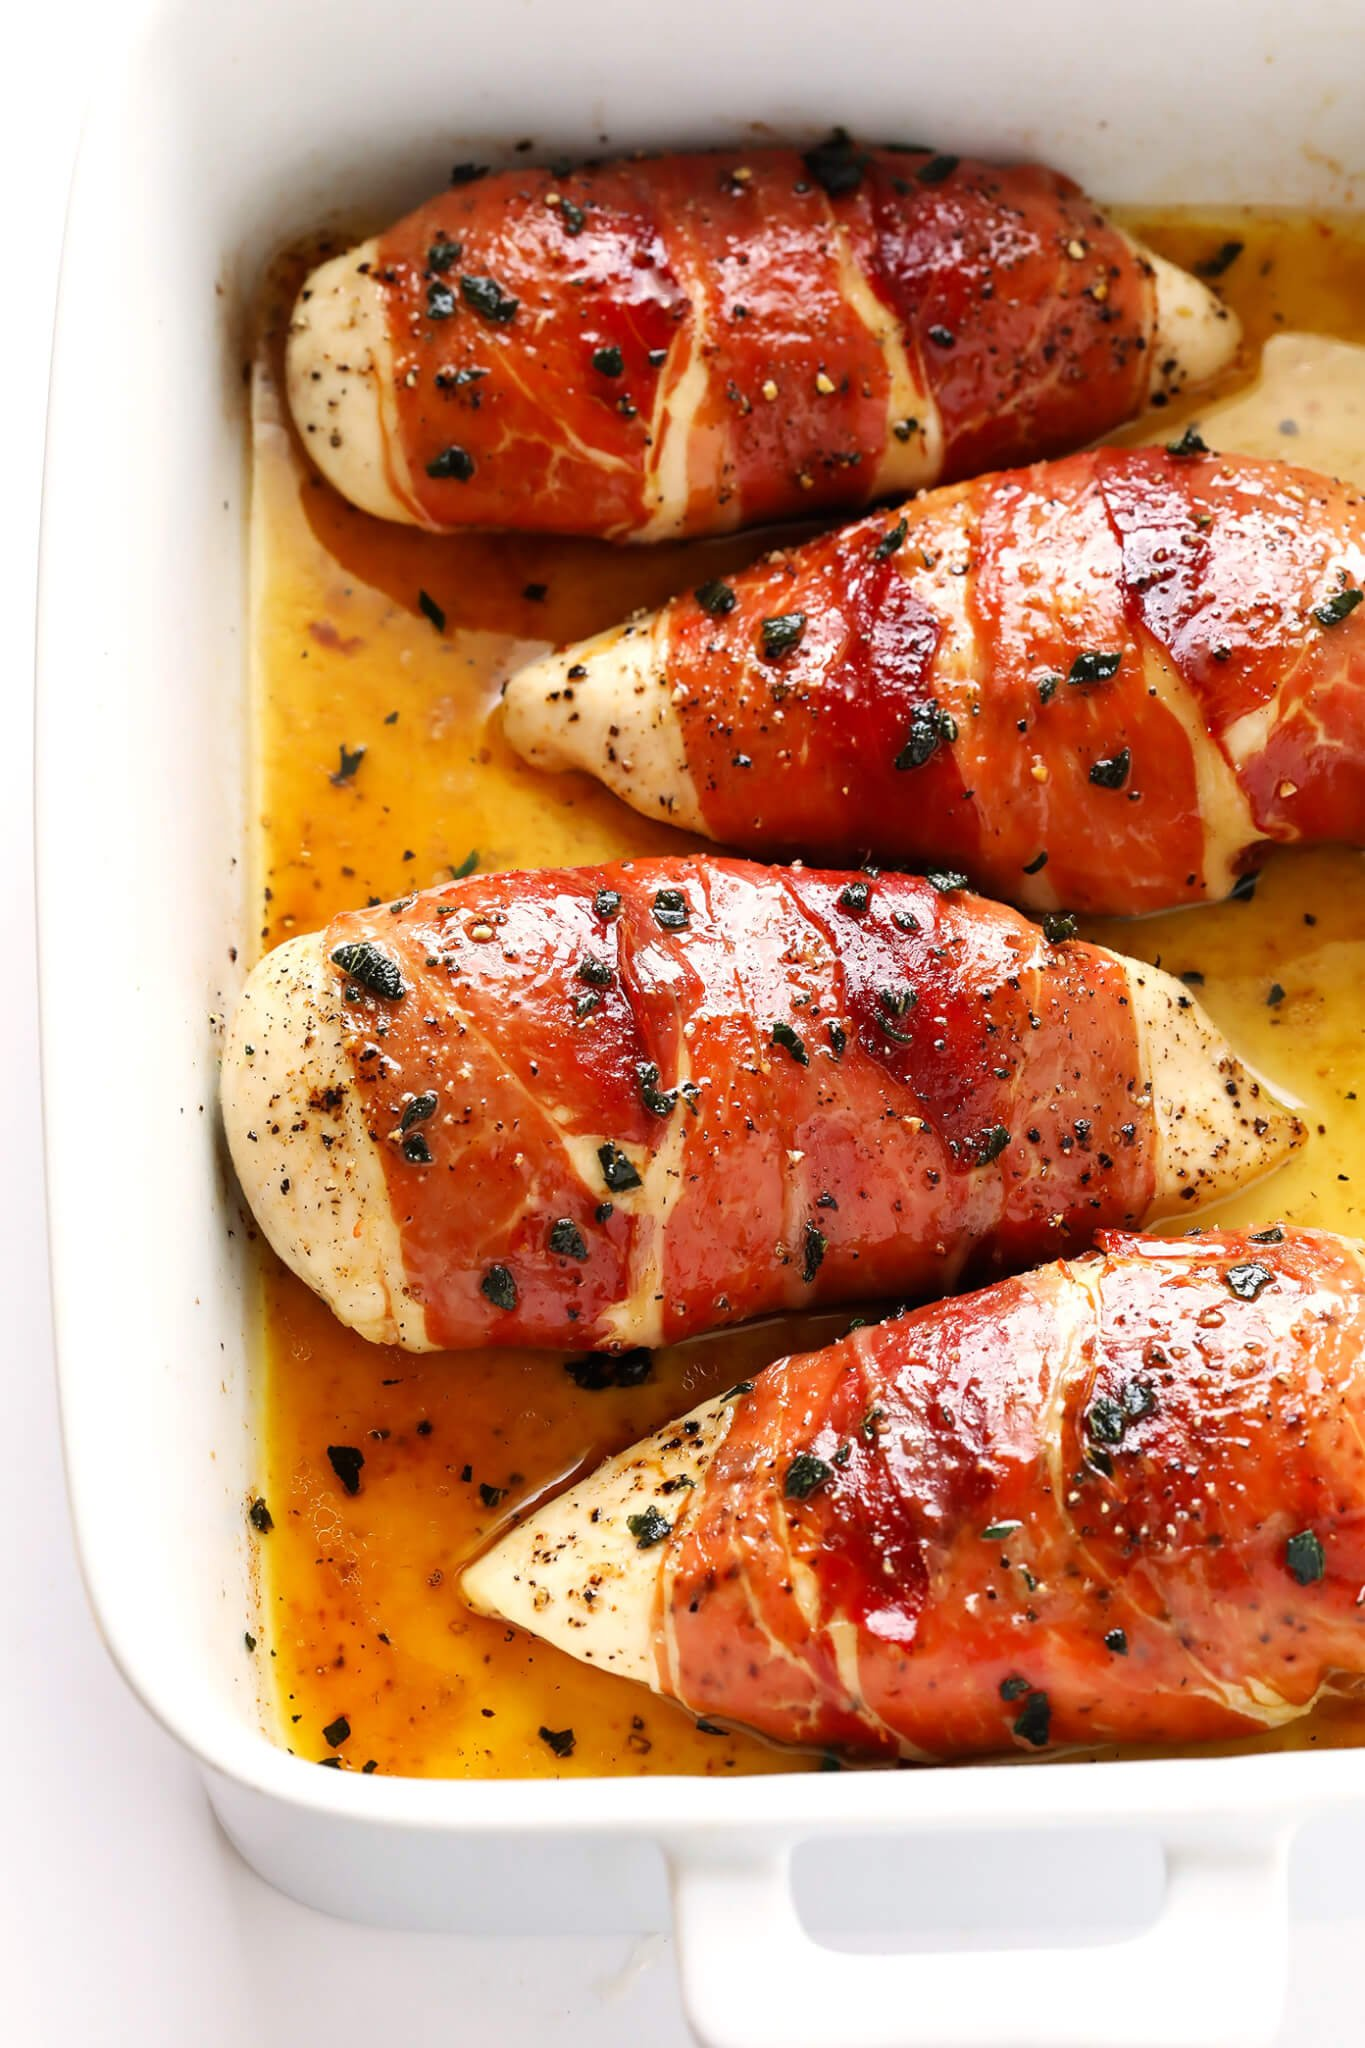 Prosciutto-Wrapped Baked Chicken Recipe